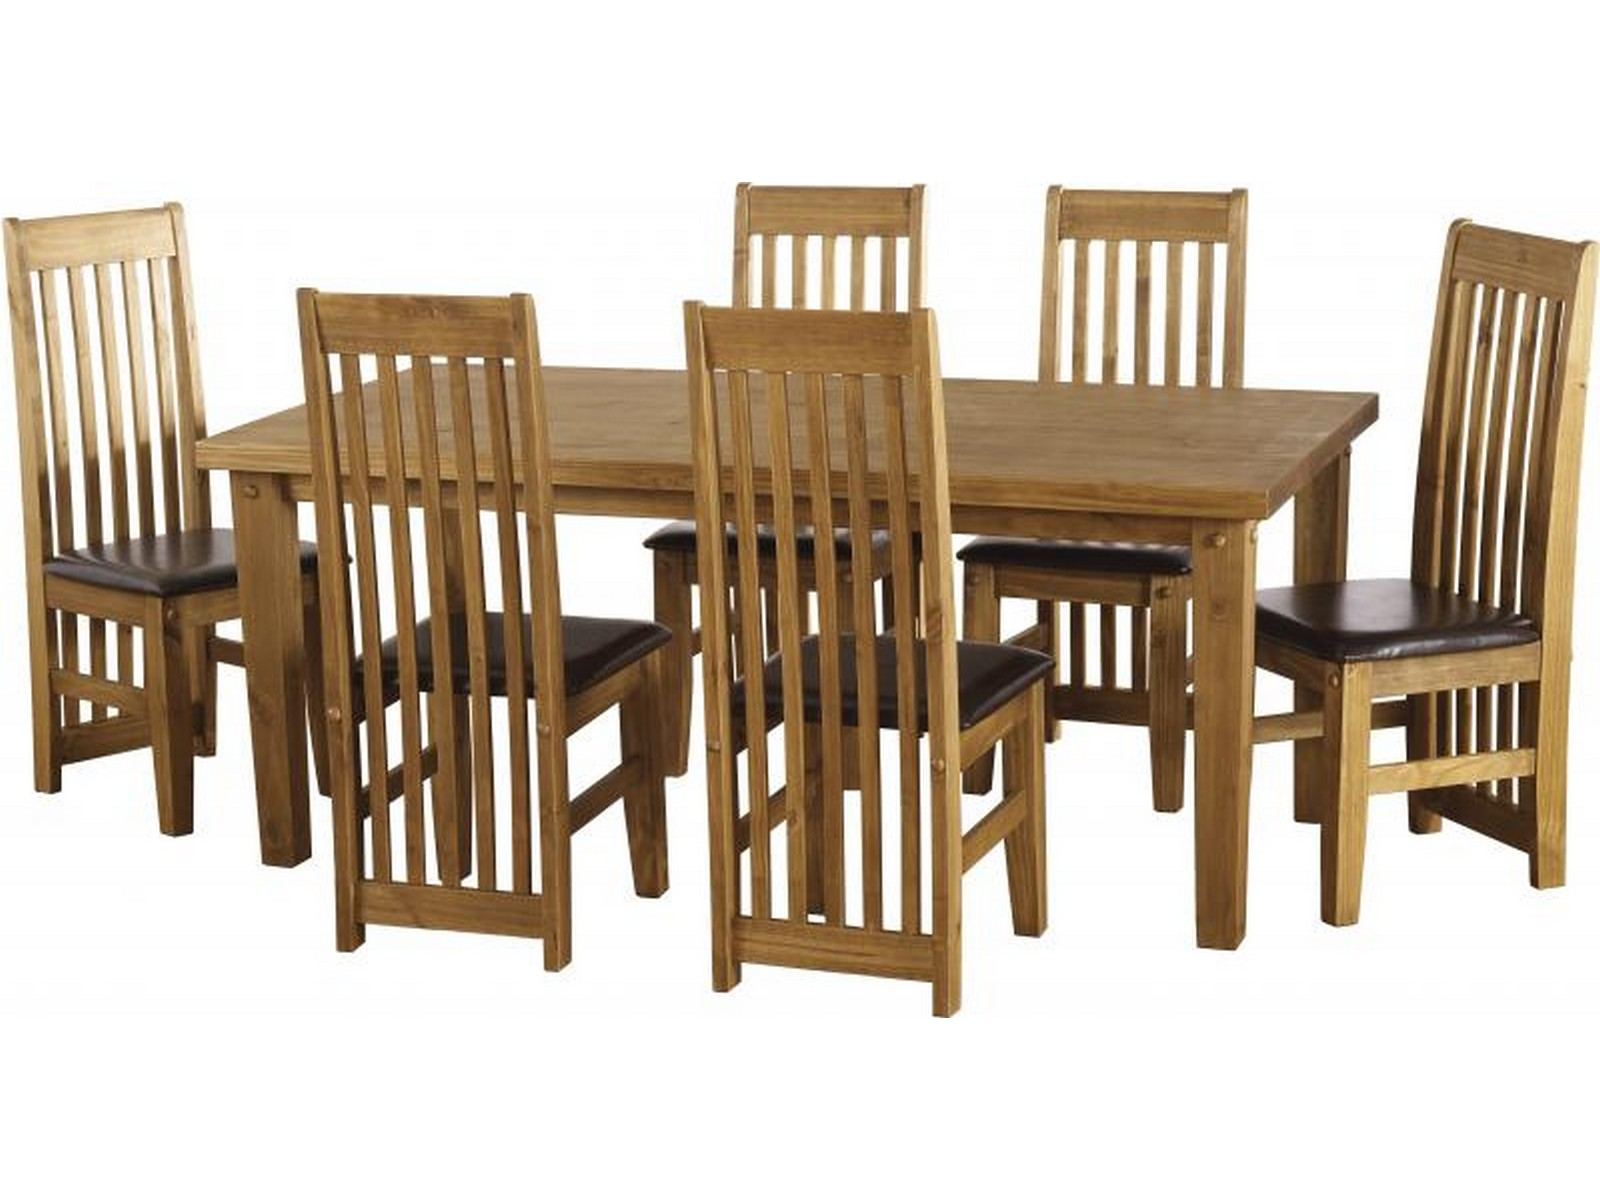 Ordinaire Seconique Tortilla 6ft Dining Table U0026 6 Chair Set Solid Pine With Brown PU  Leather Seats